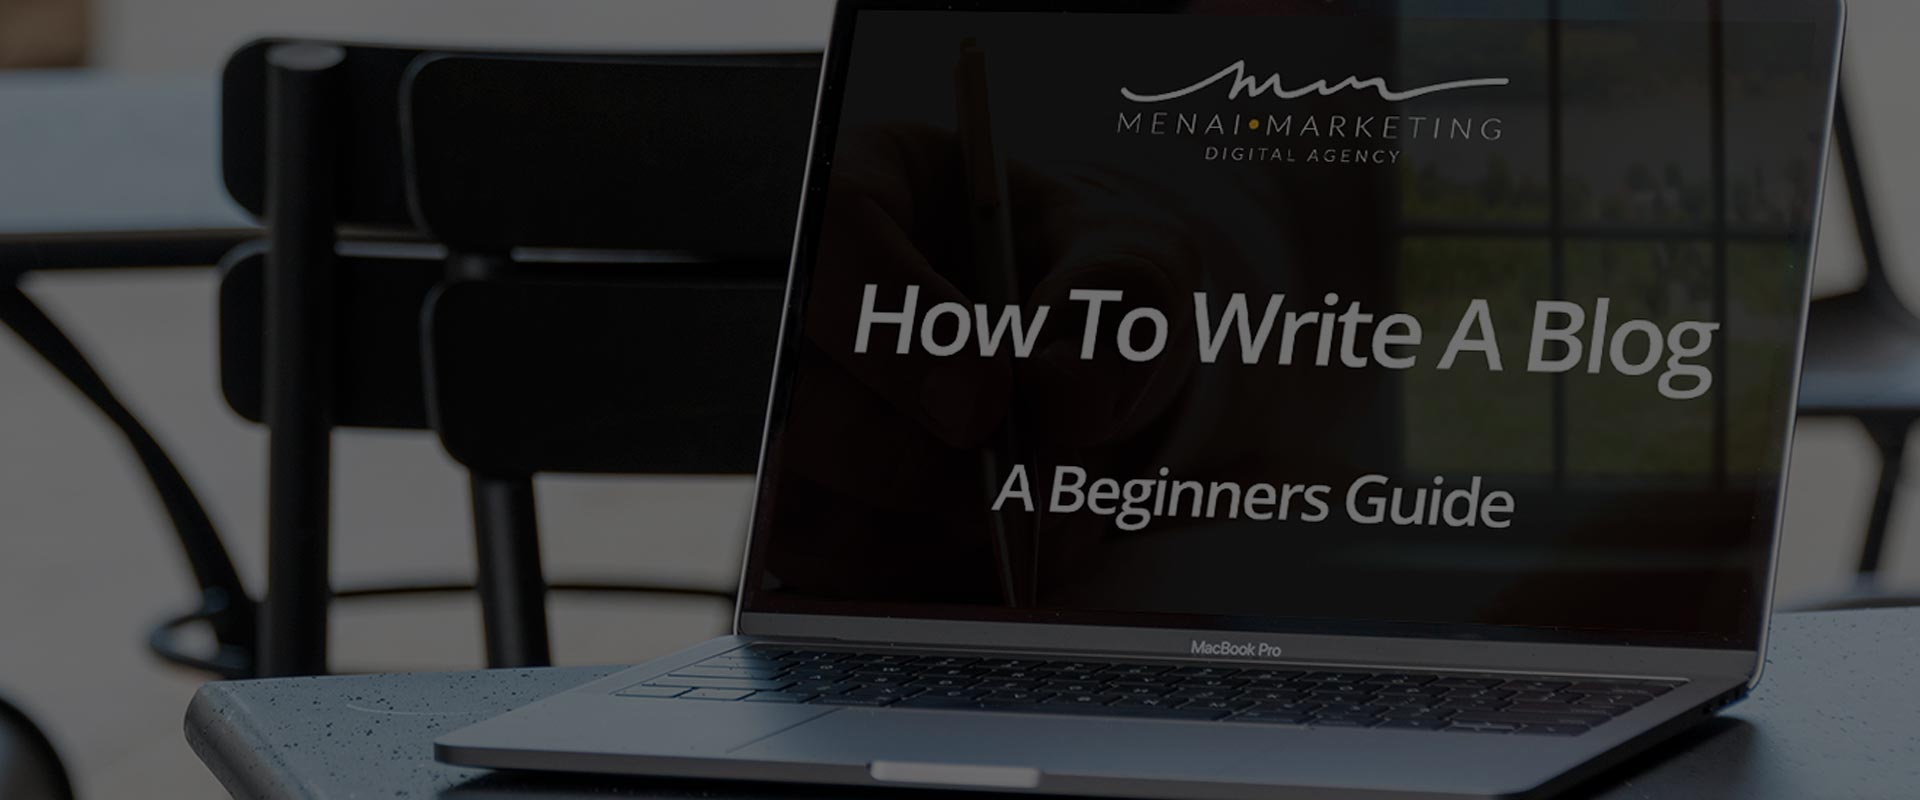 How To Write A Blog - a Beginners Guide